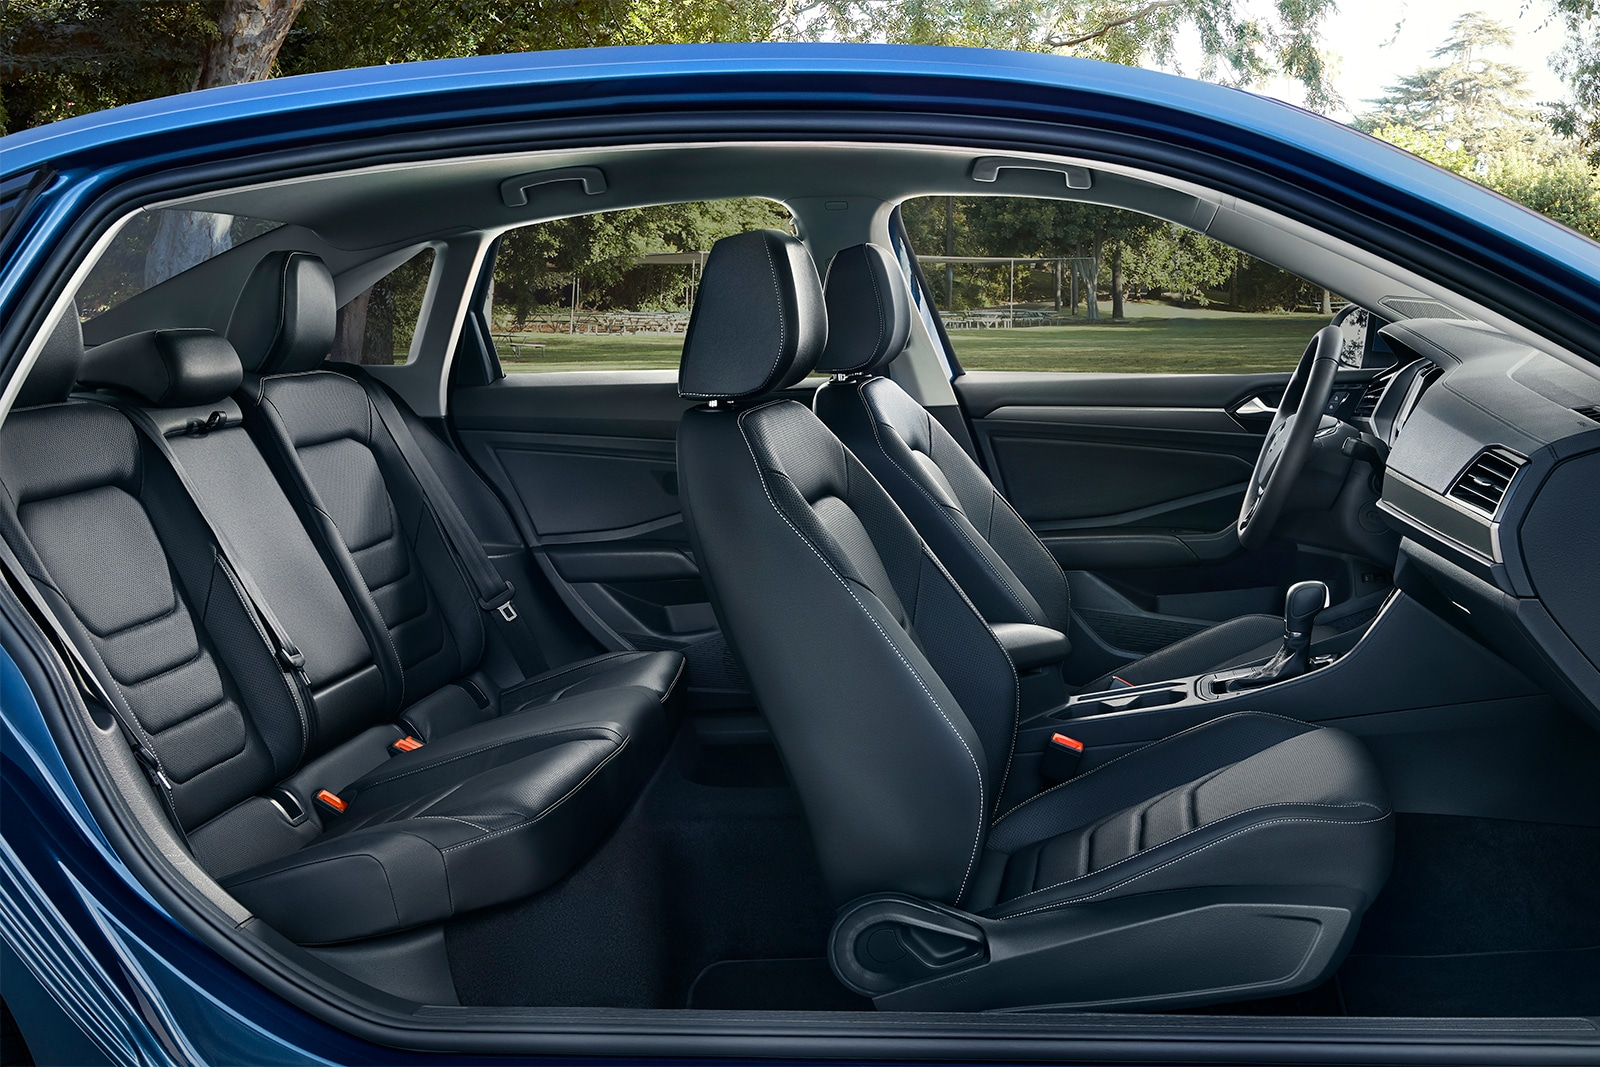 New Volkswagen Jetta Interior